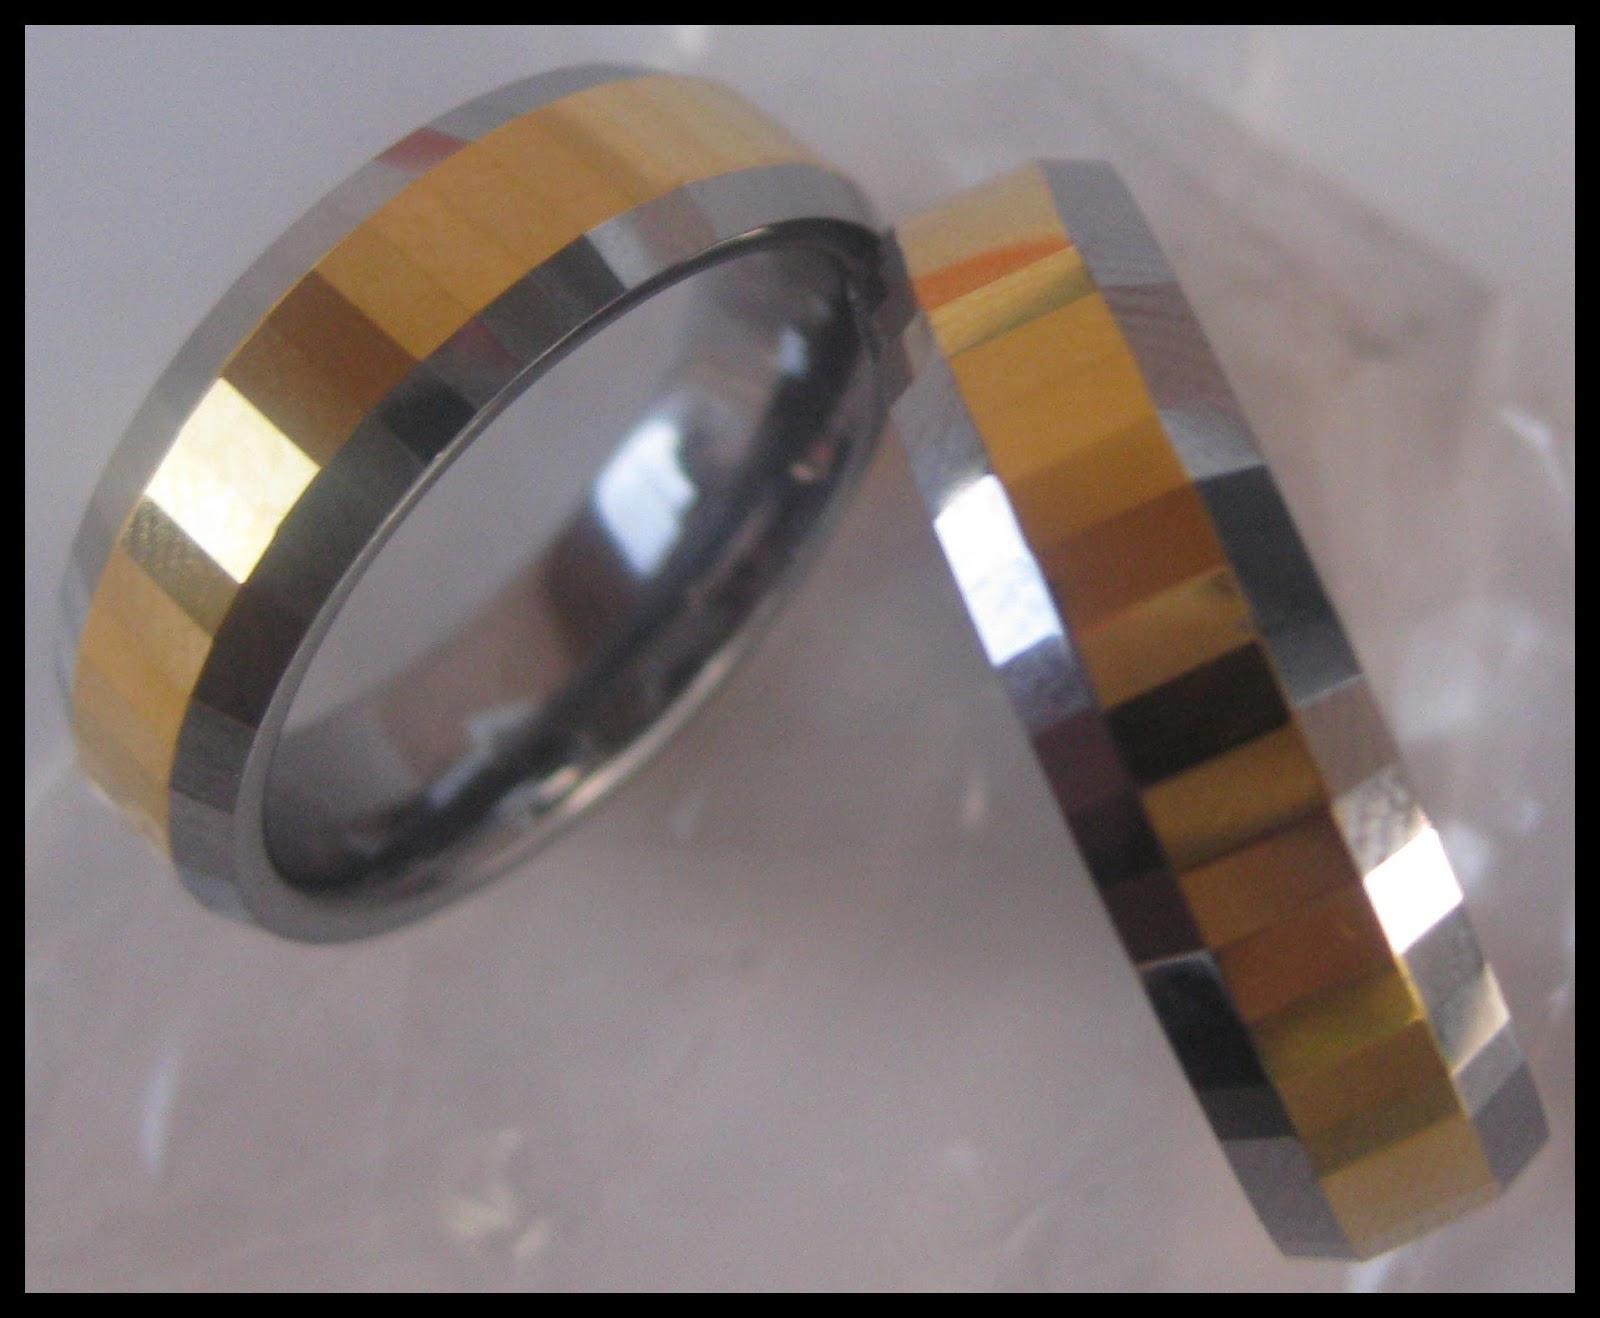 The tungsten wedding rings are scratch resistant .Tungsten is twice as hard